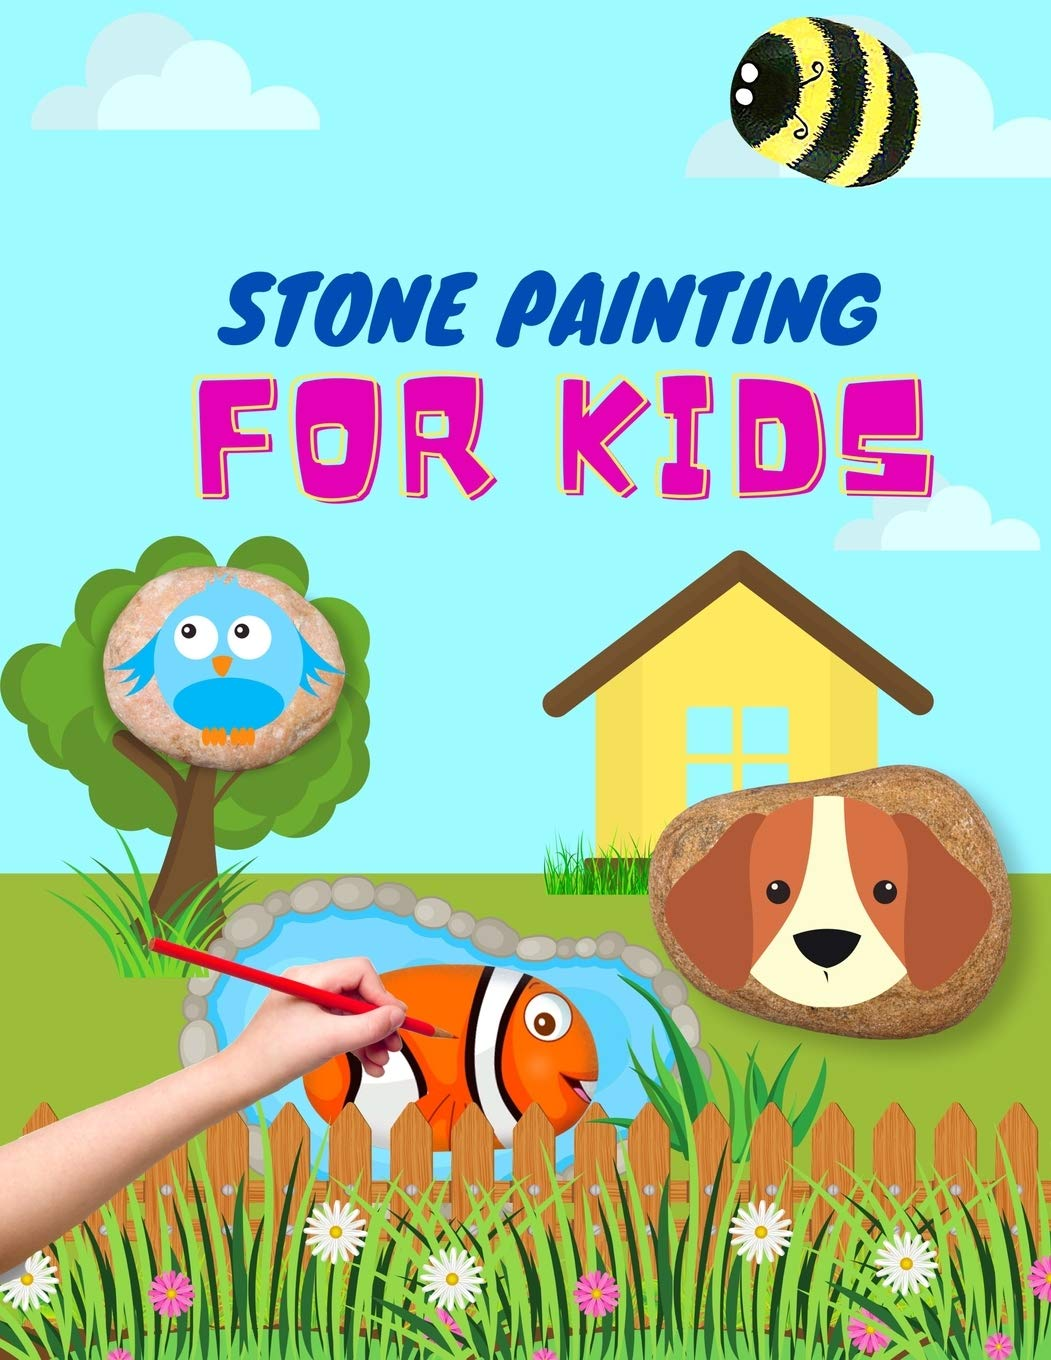 Stone Painting For Kids Rock Painting Books For Girls And Boys Painted Rocks Ideas Painting Rocks For Kids Schulz Lotte 9798690630300 Amazon Com Books